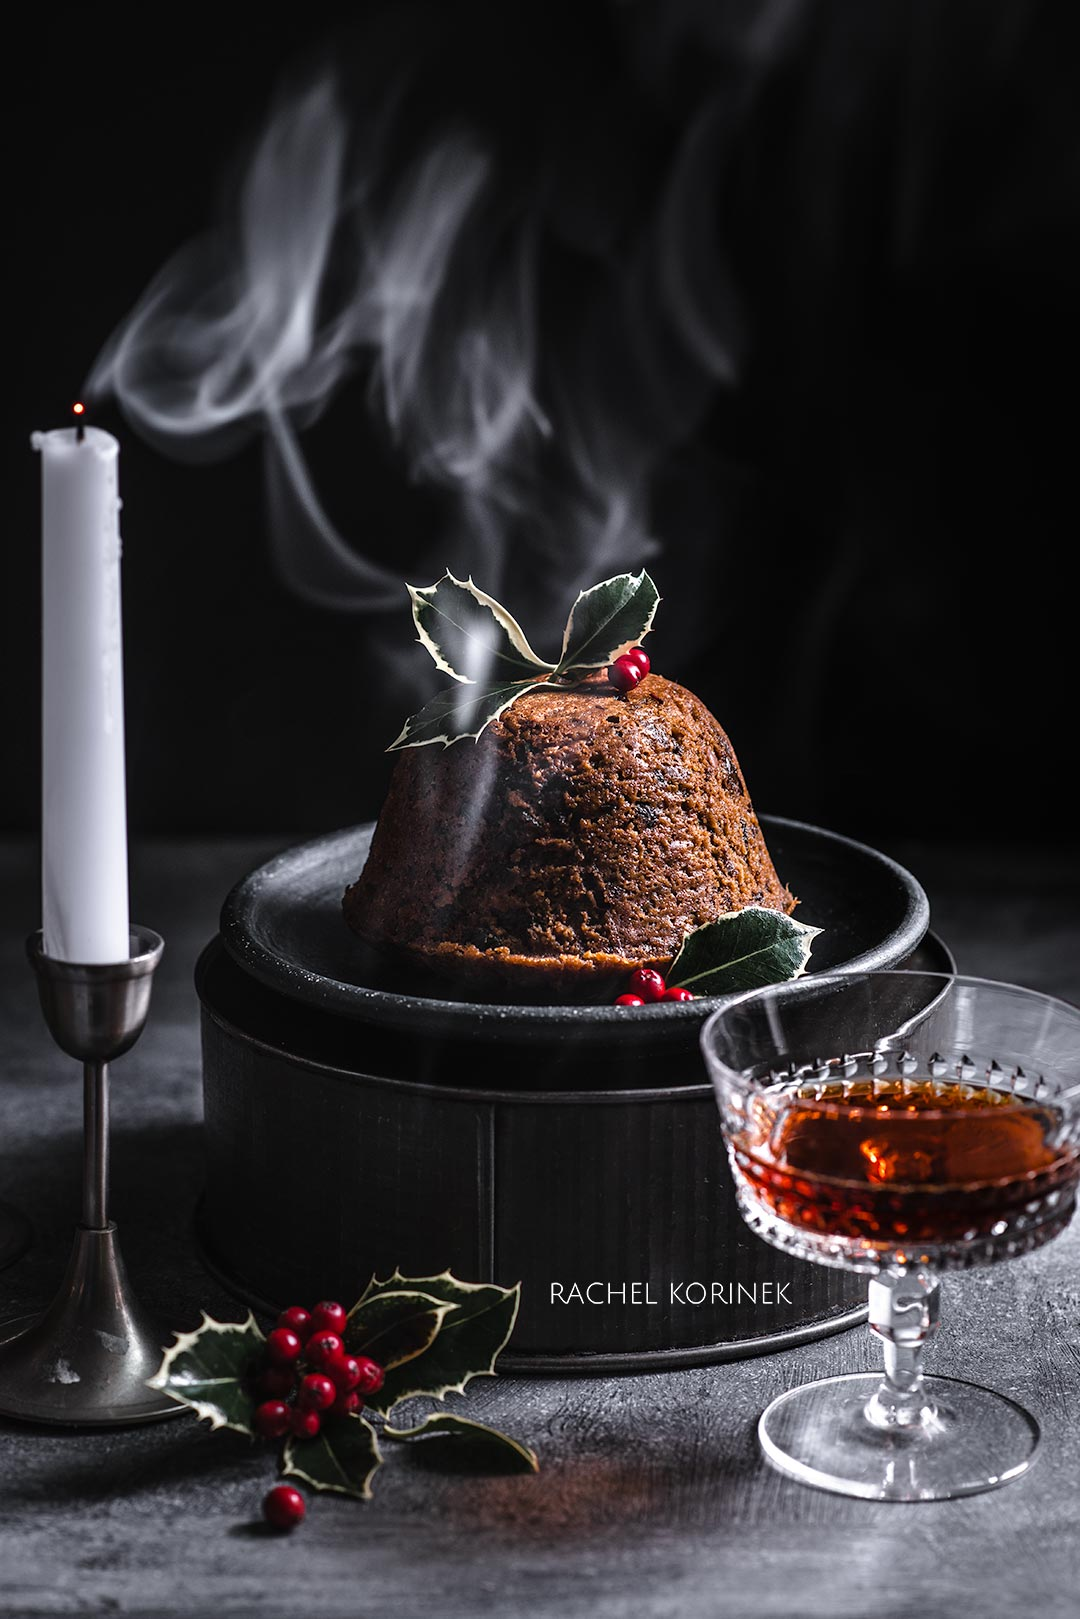 Rachel Korinek Food Photographer | Christmas Pudding  Click to check out my latest food photography projects.  #twolovesstudio #beautifulcuisine #foodbloggerpro #foodphotography #learnfoodphotography #foodblogger #learnphotography #foodstyling #lightingtips #naturallight #foodphotographer